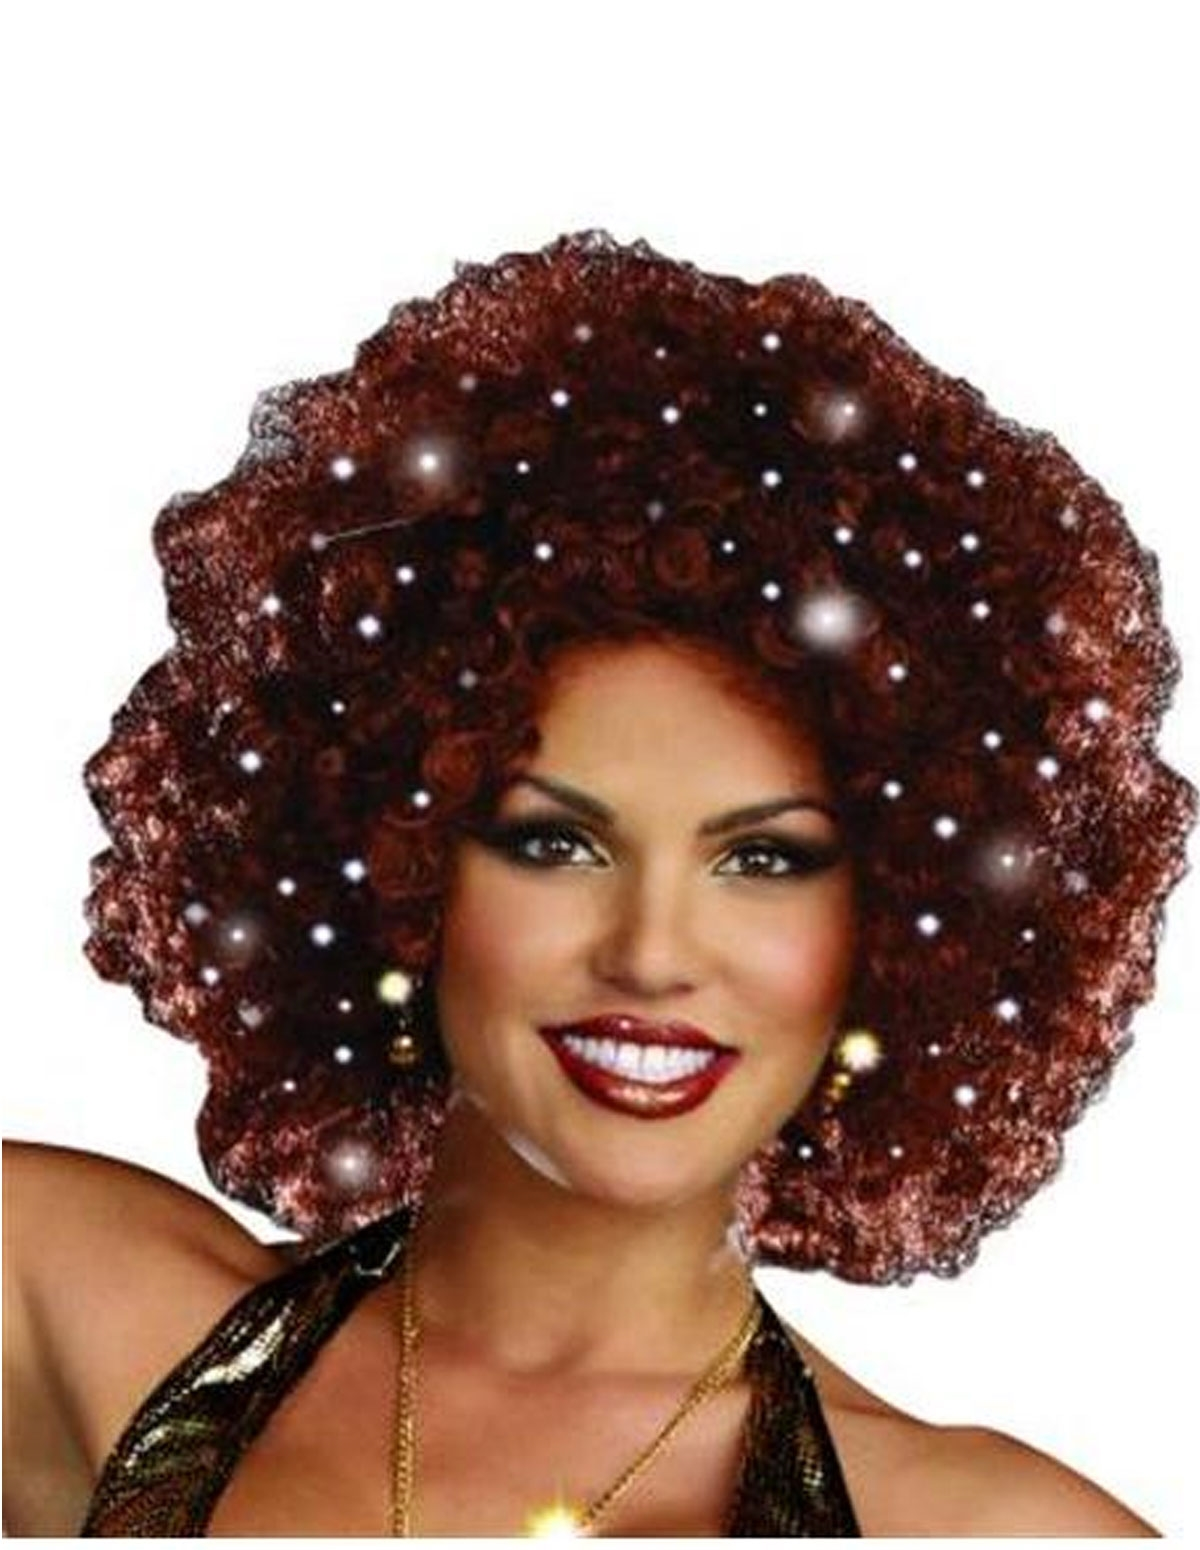 Light Up Afro Wig